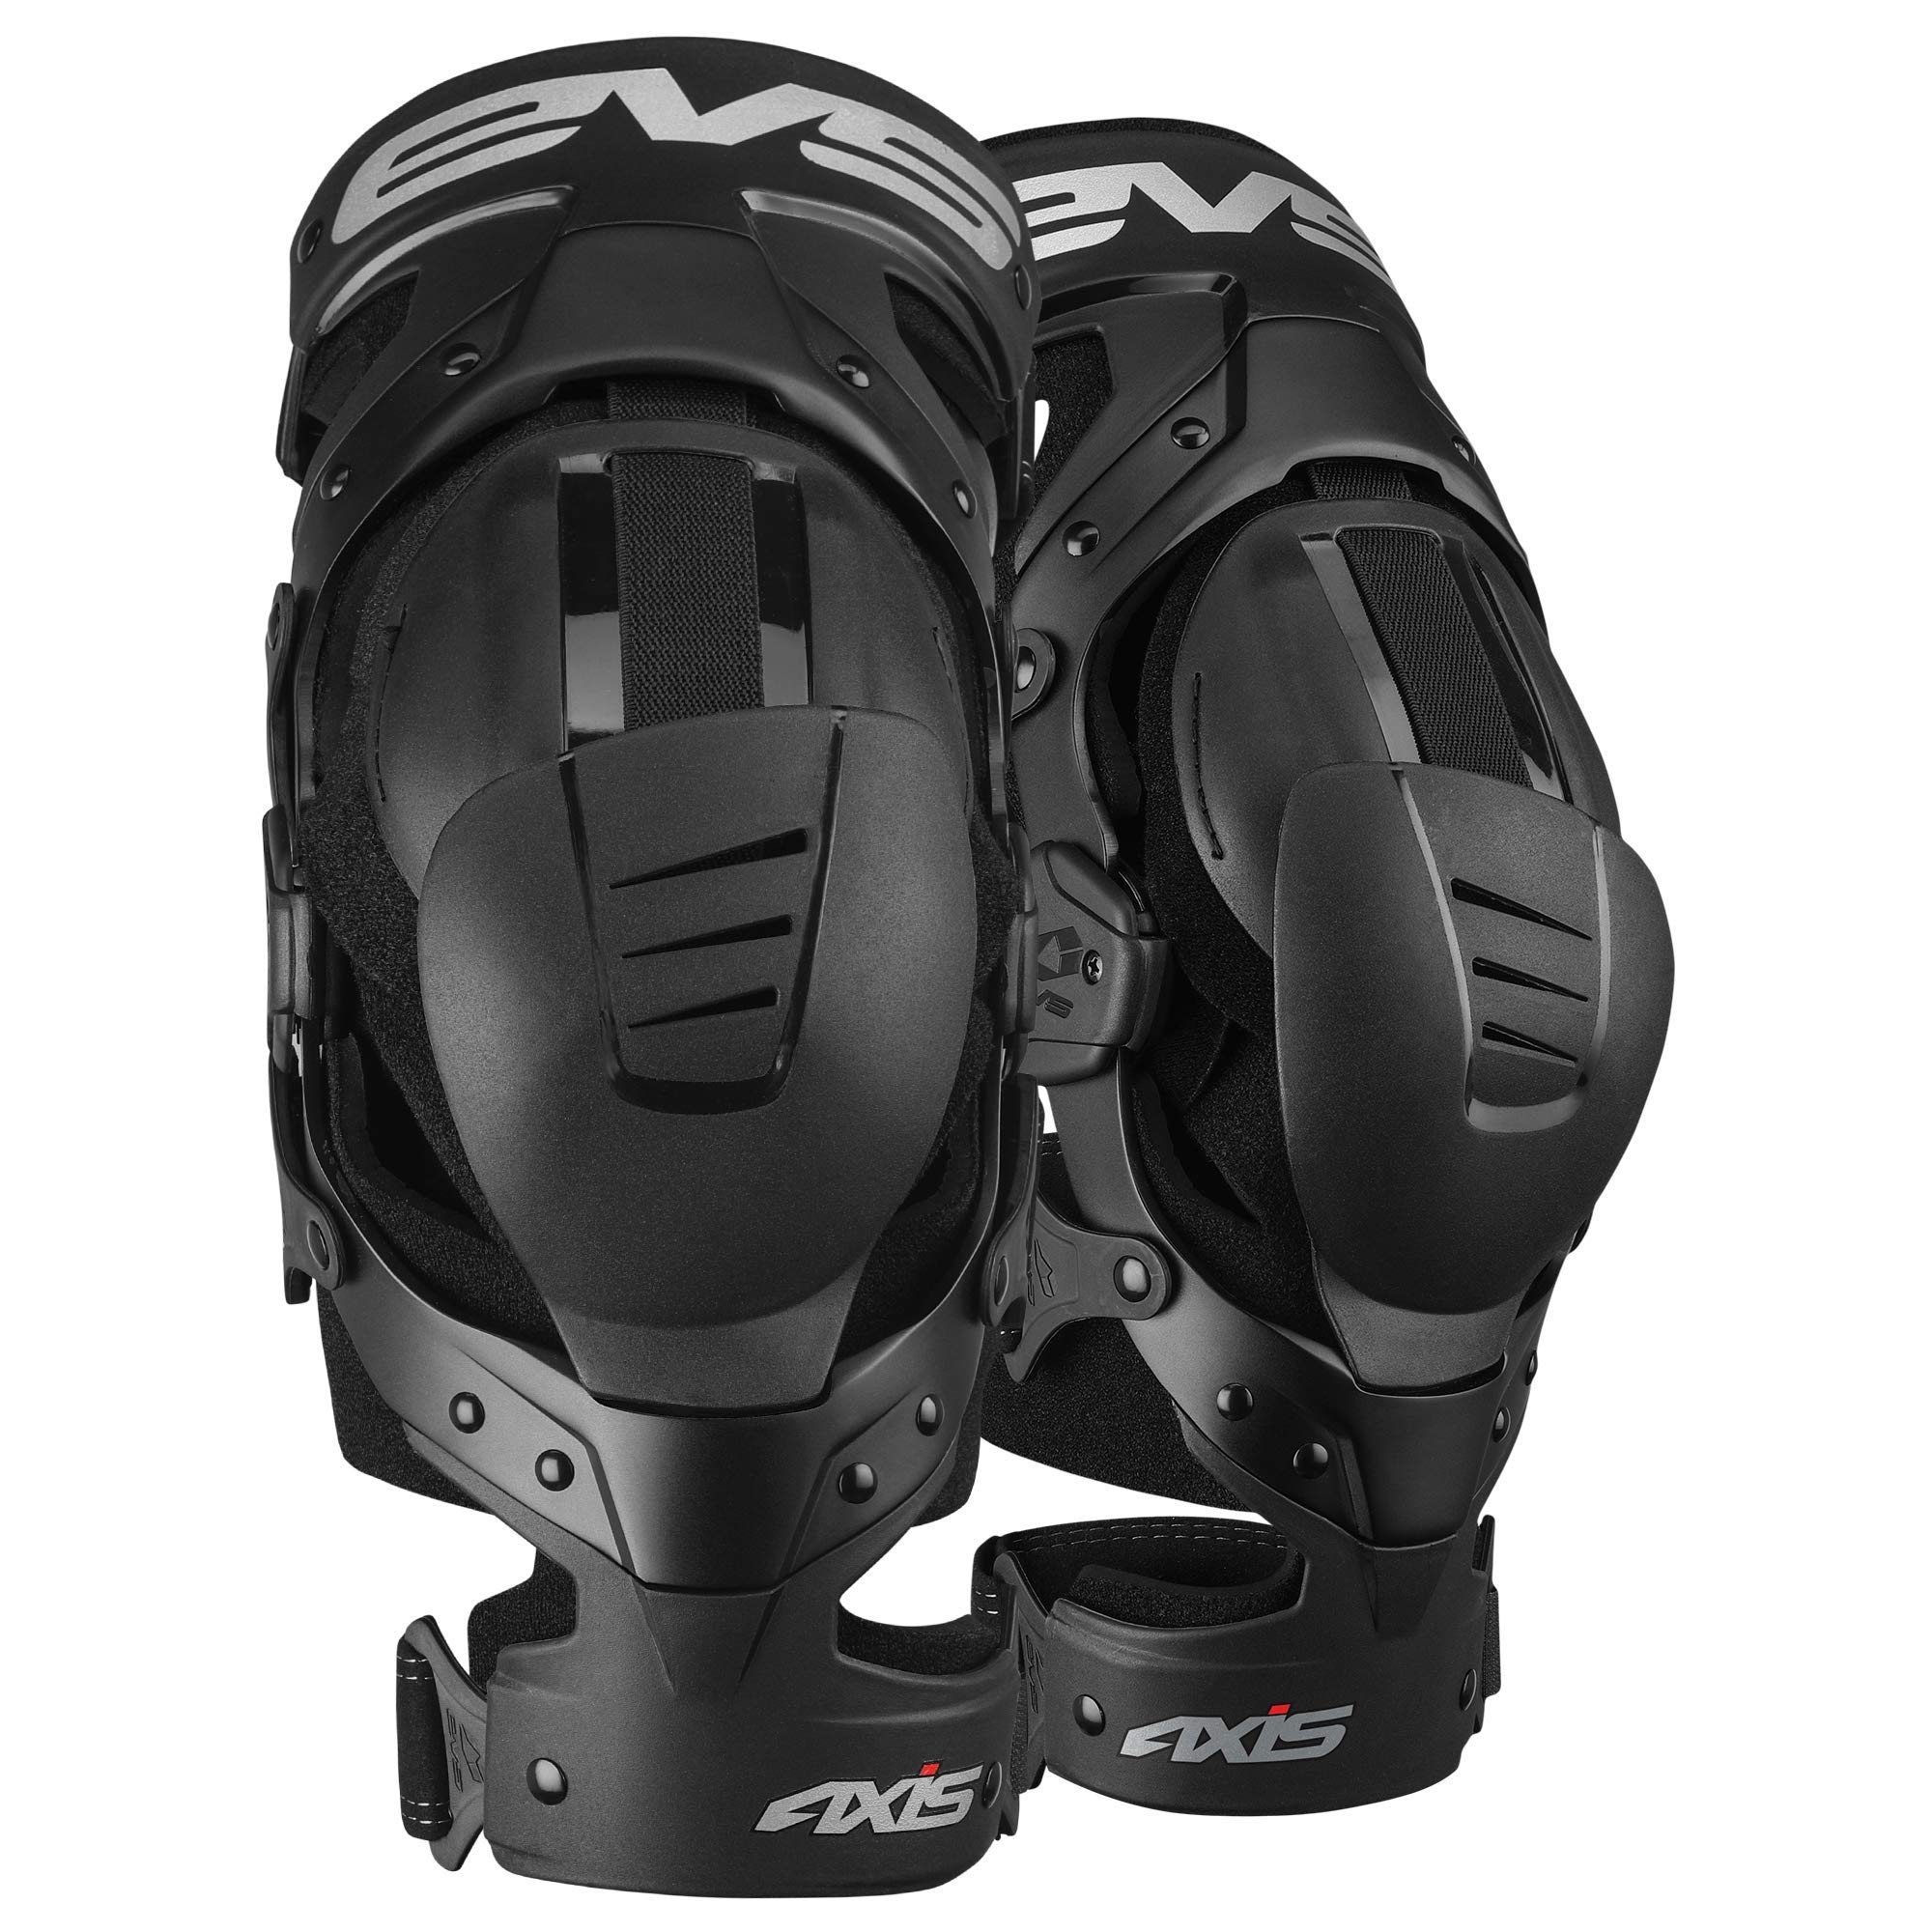 ee8cc0ef4b EVS Sports - AXIS Sport Knee Brace - Pair - DirtRider : MX & Off ...